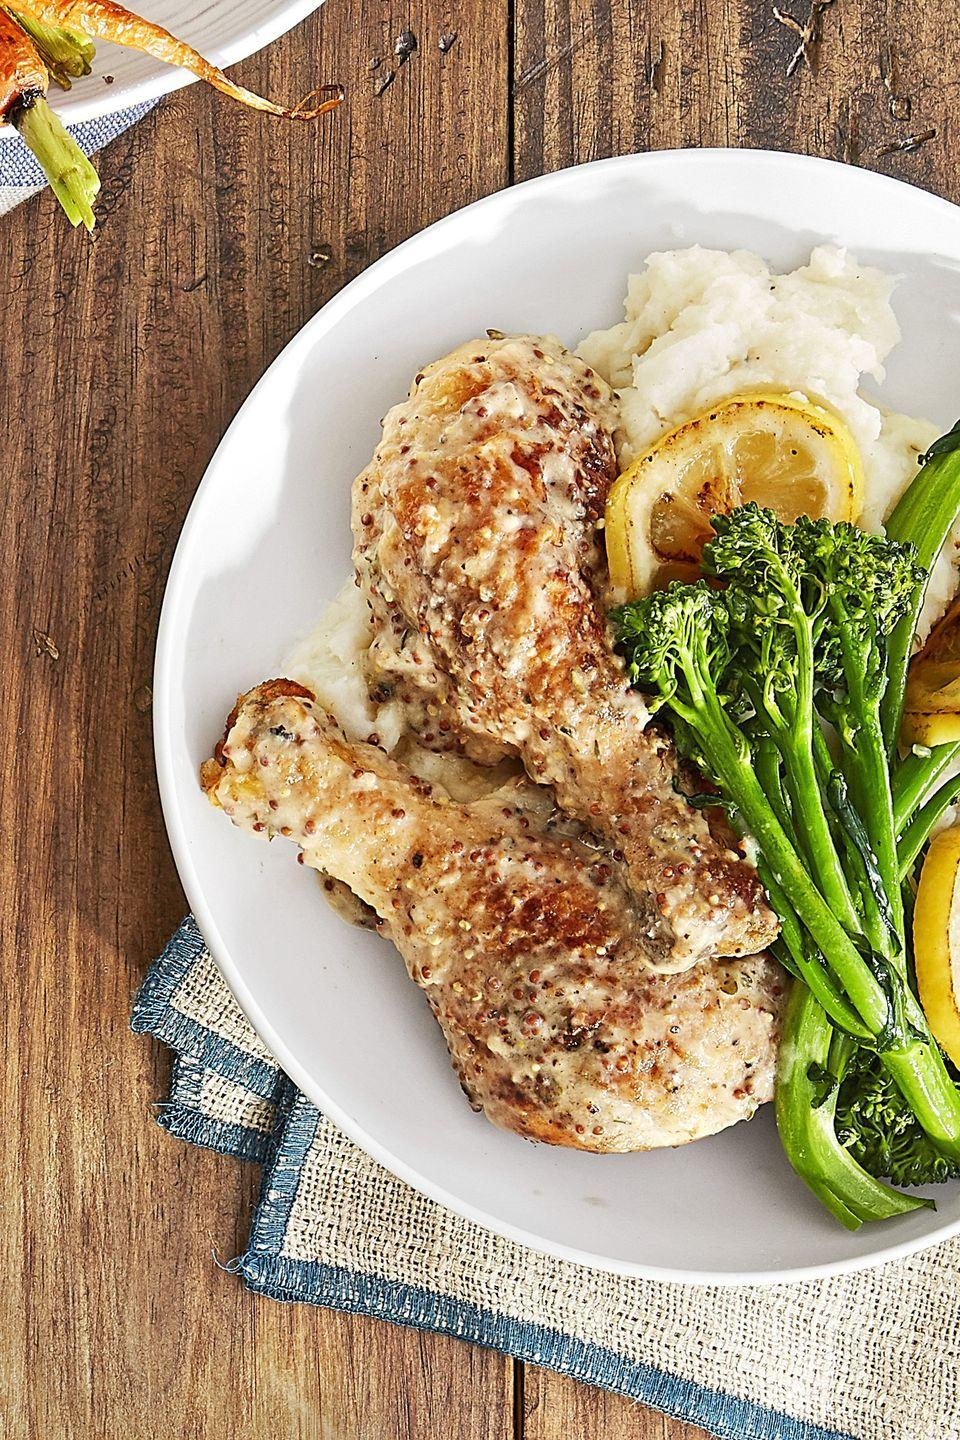 "<p>Dress up drumsticks with a white wine, cream, and Dijon batter.</p><p><strong><a href=""https://www.countryliving.com/food-drinks/recipes/a44268/dijon-smothered-chicken-legs-broccolini-recipe/"" rel=""nofollow noopener"" target=""_blank"" data-ylk=""slk:Get the recipe"" class=""link rapid-noclick-resp"">Get the recipe</a>. </strong></p>"